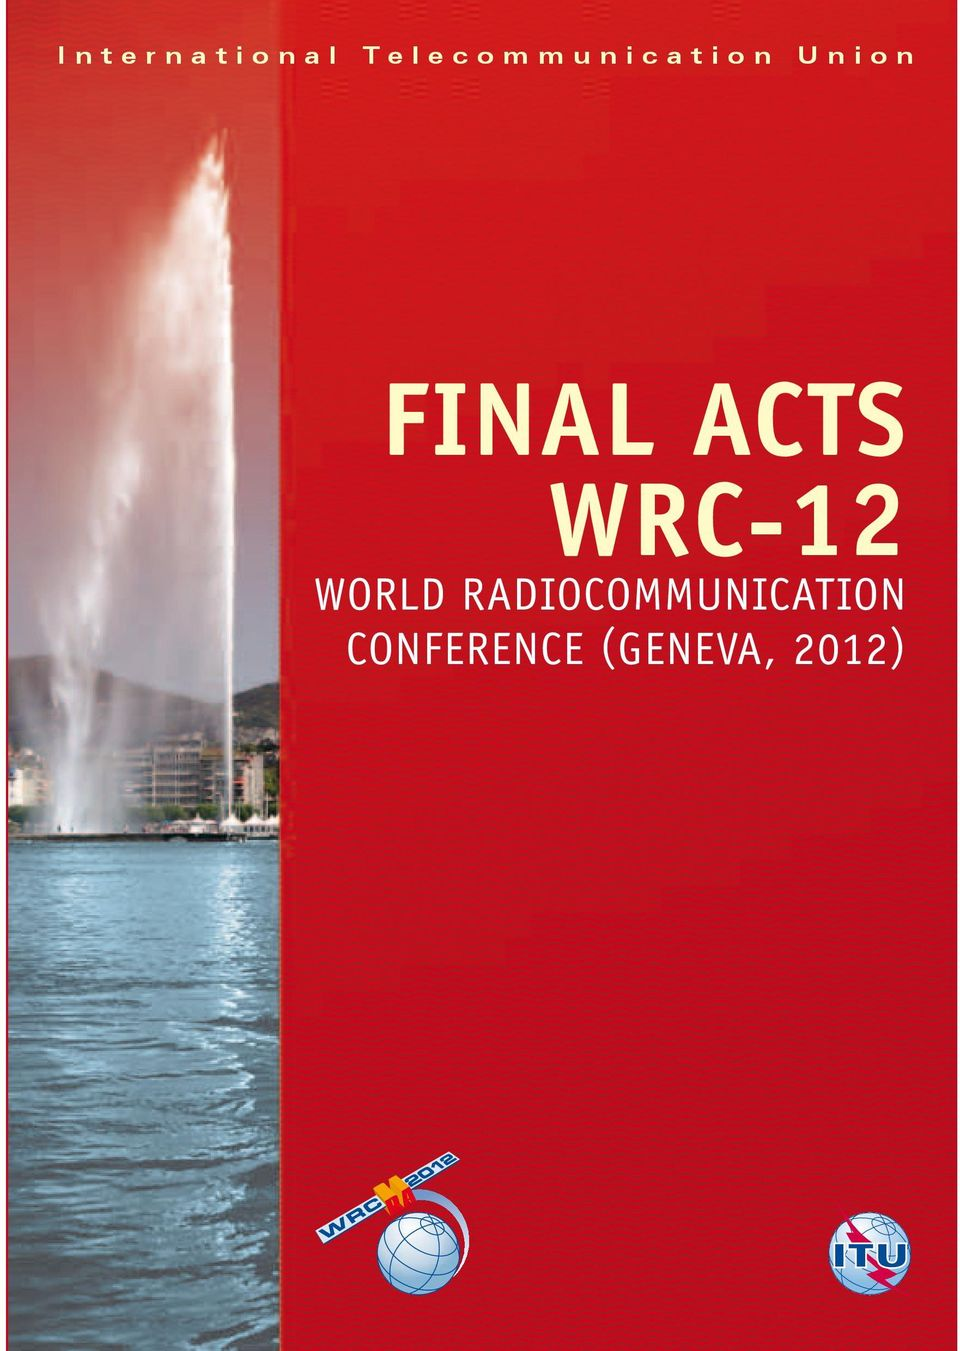 FINAL ACTS WRC-12 WORLD